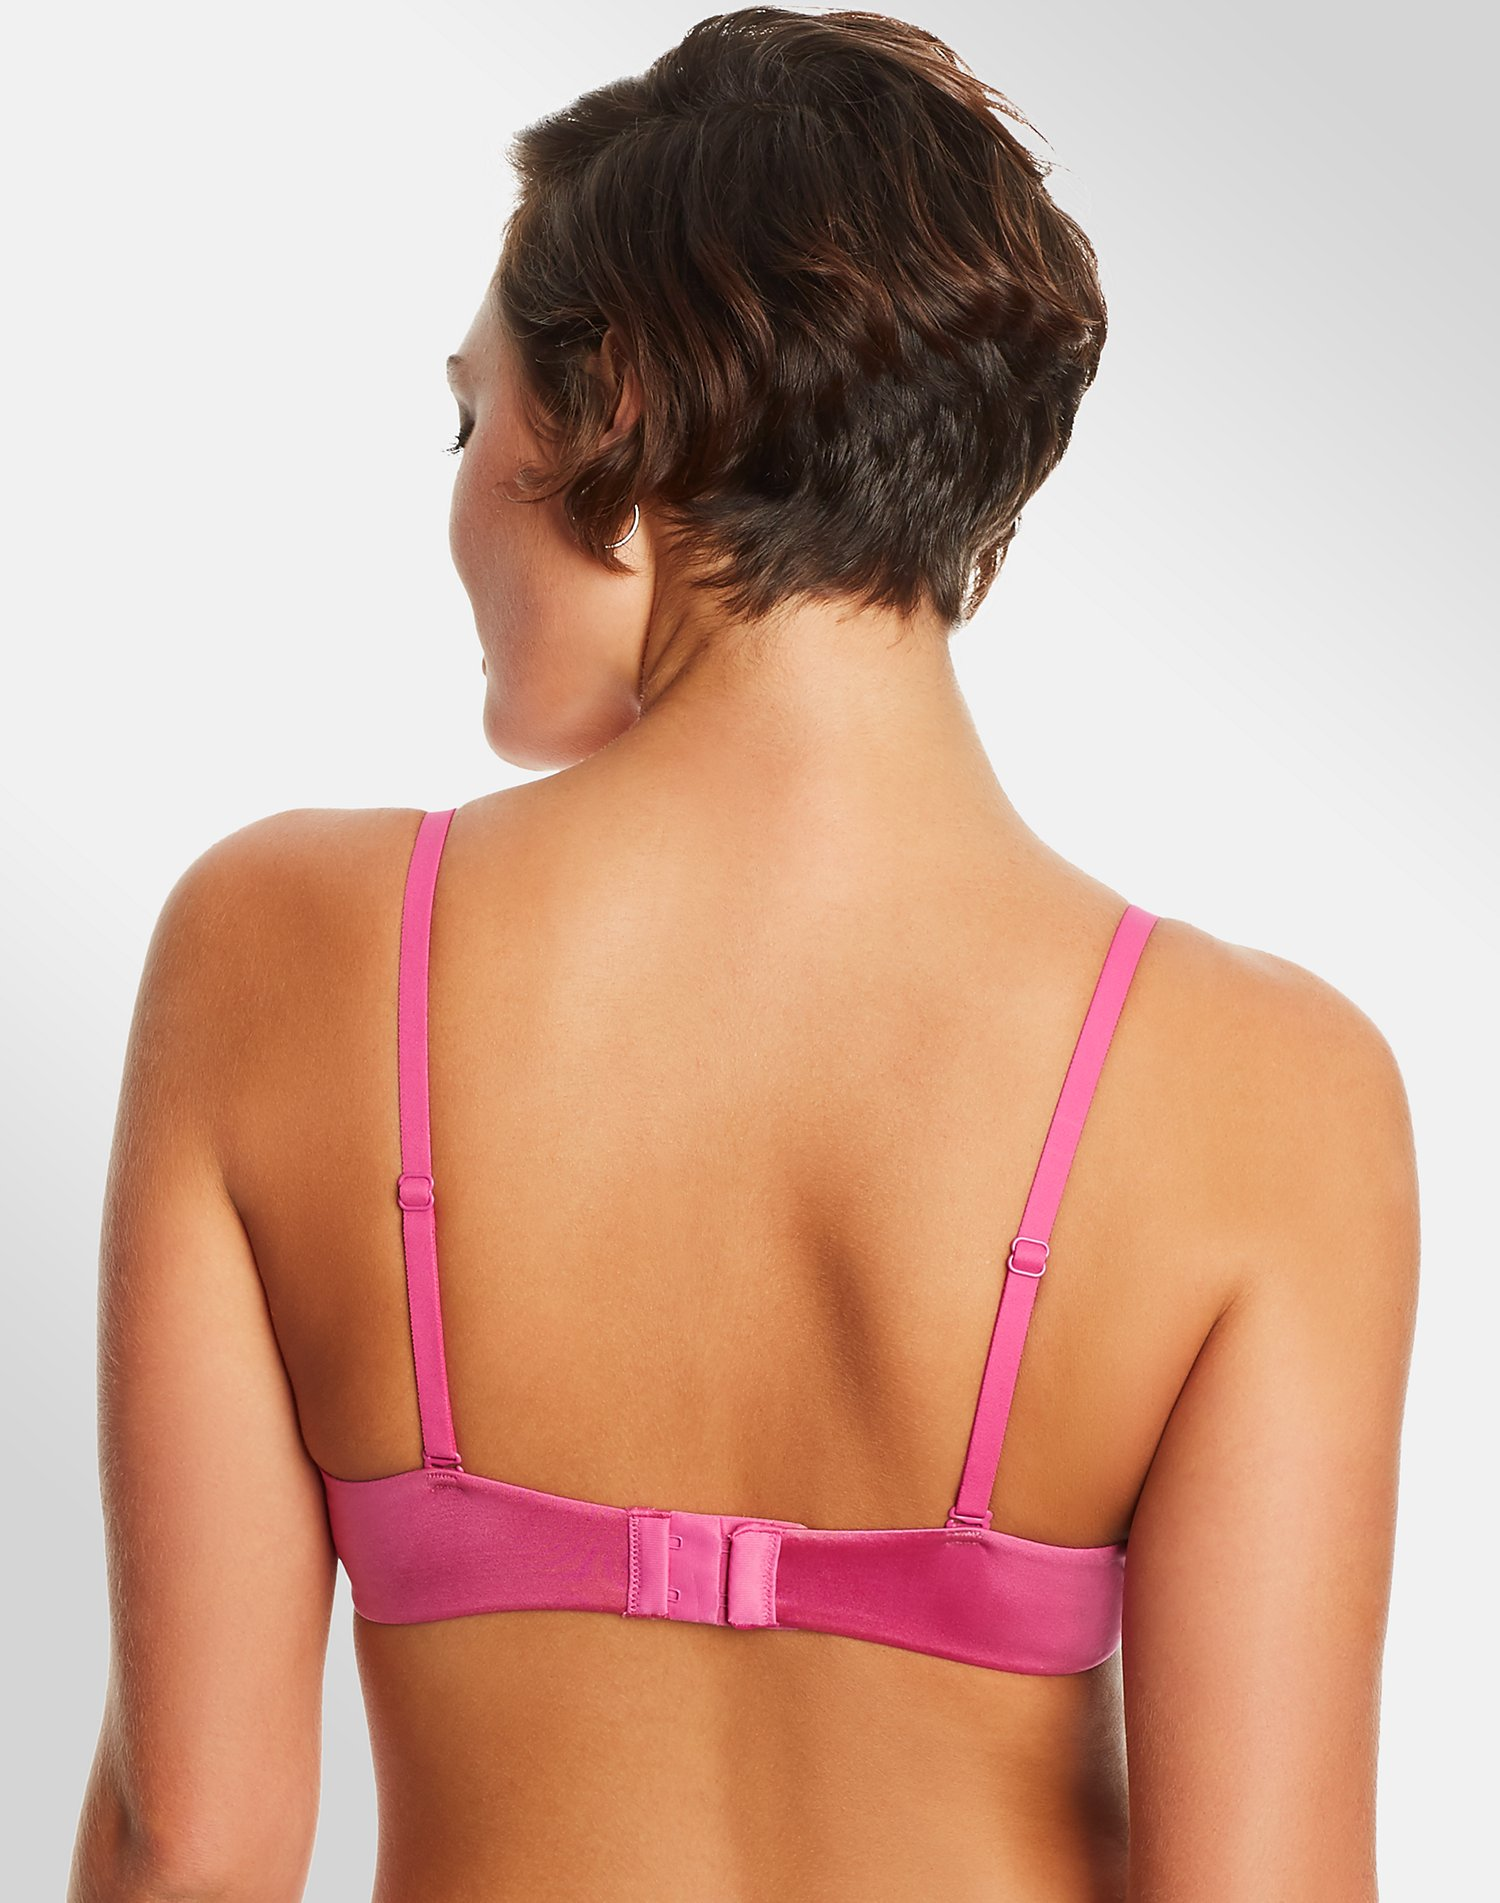 d20fc38434be3 Maidenform Love The Lift Push Up and In Underwire Bra